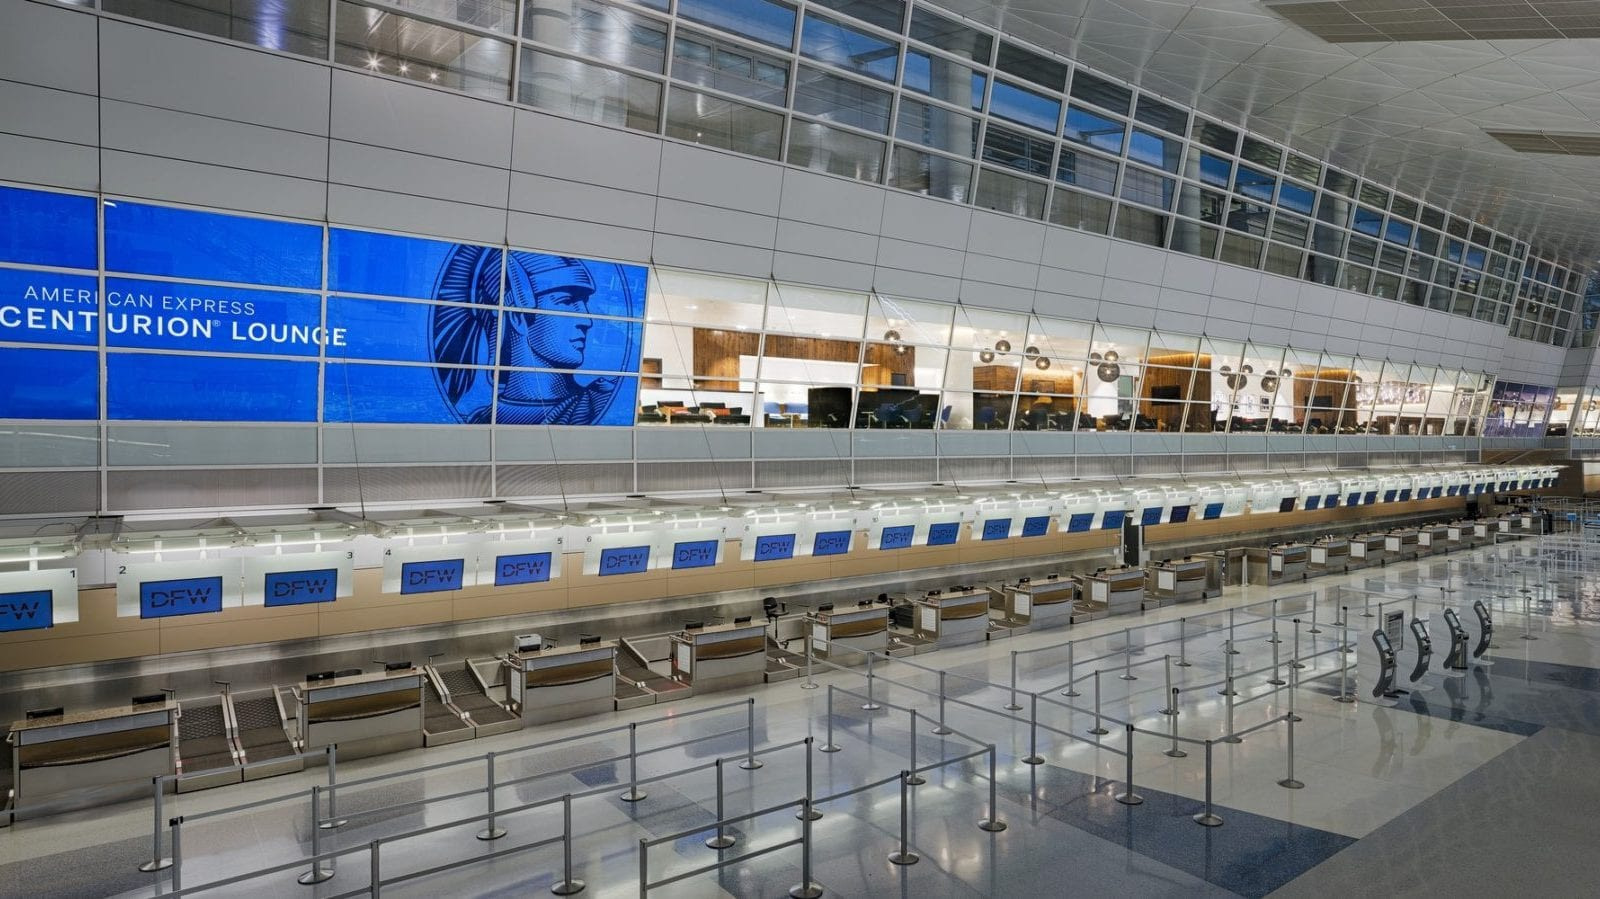 The American Express Centurion Lounge Features Branded Window Tinting Visible From a Great Distance